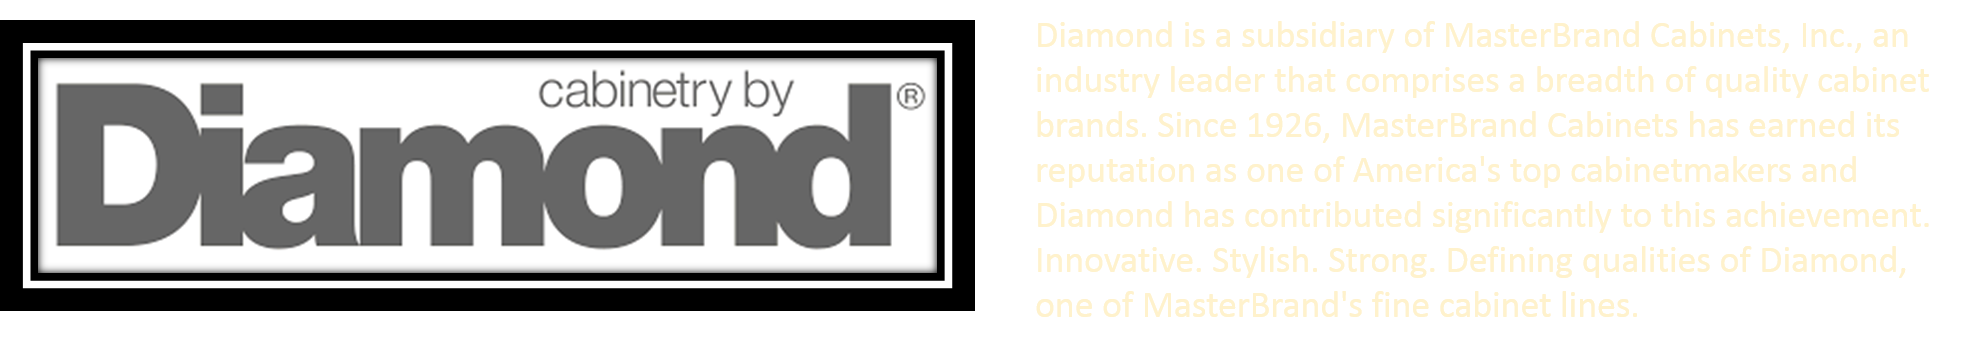 Diamond with Description 2